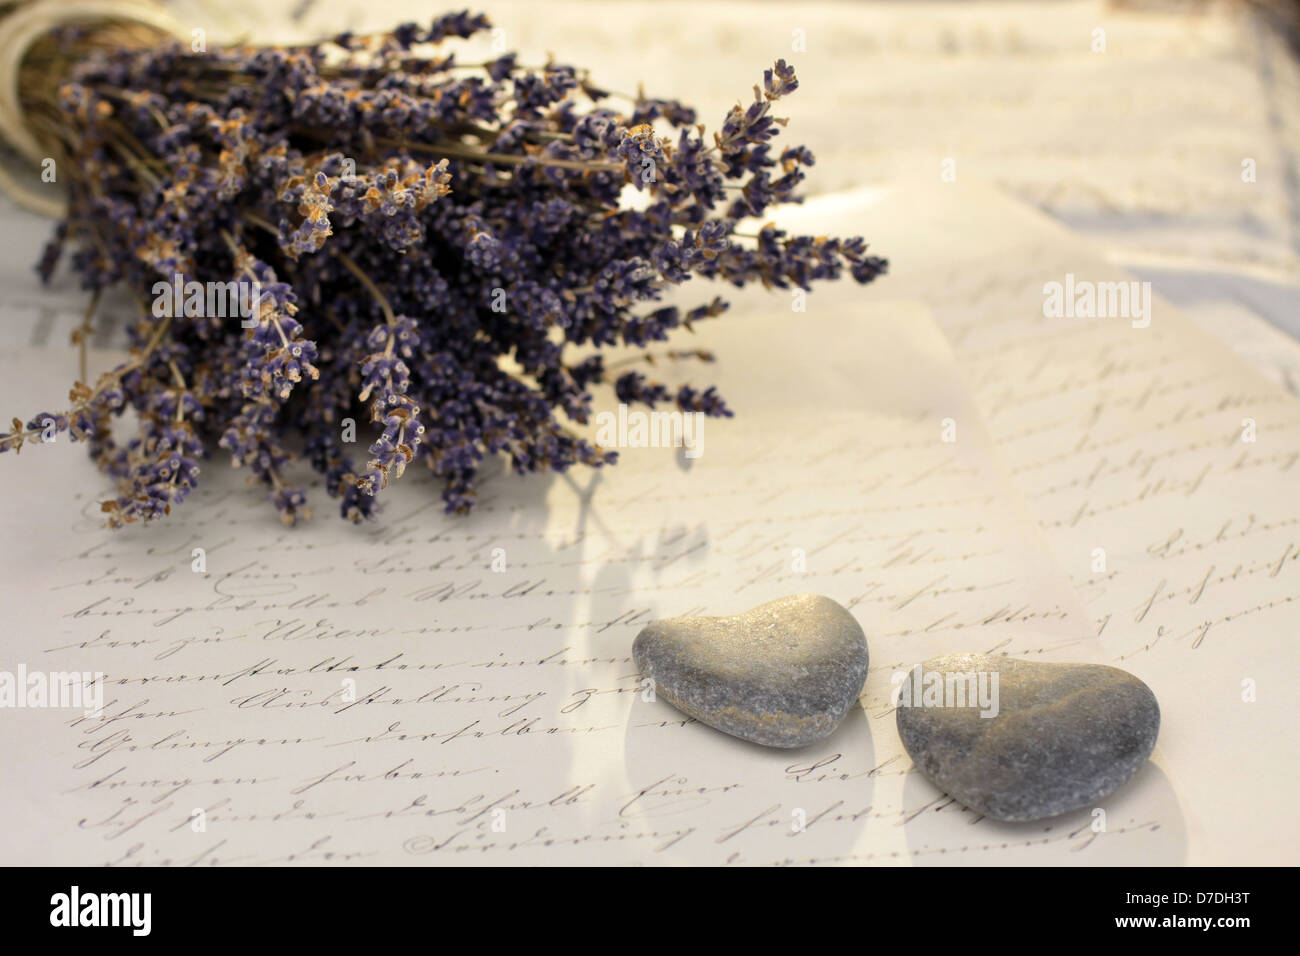 Stone hearts with old letter and lavender - Stock Image